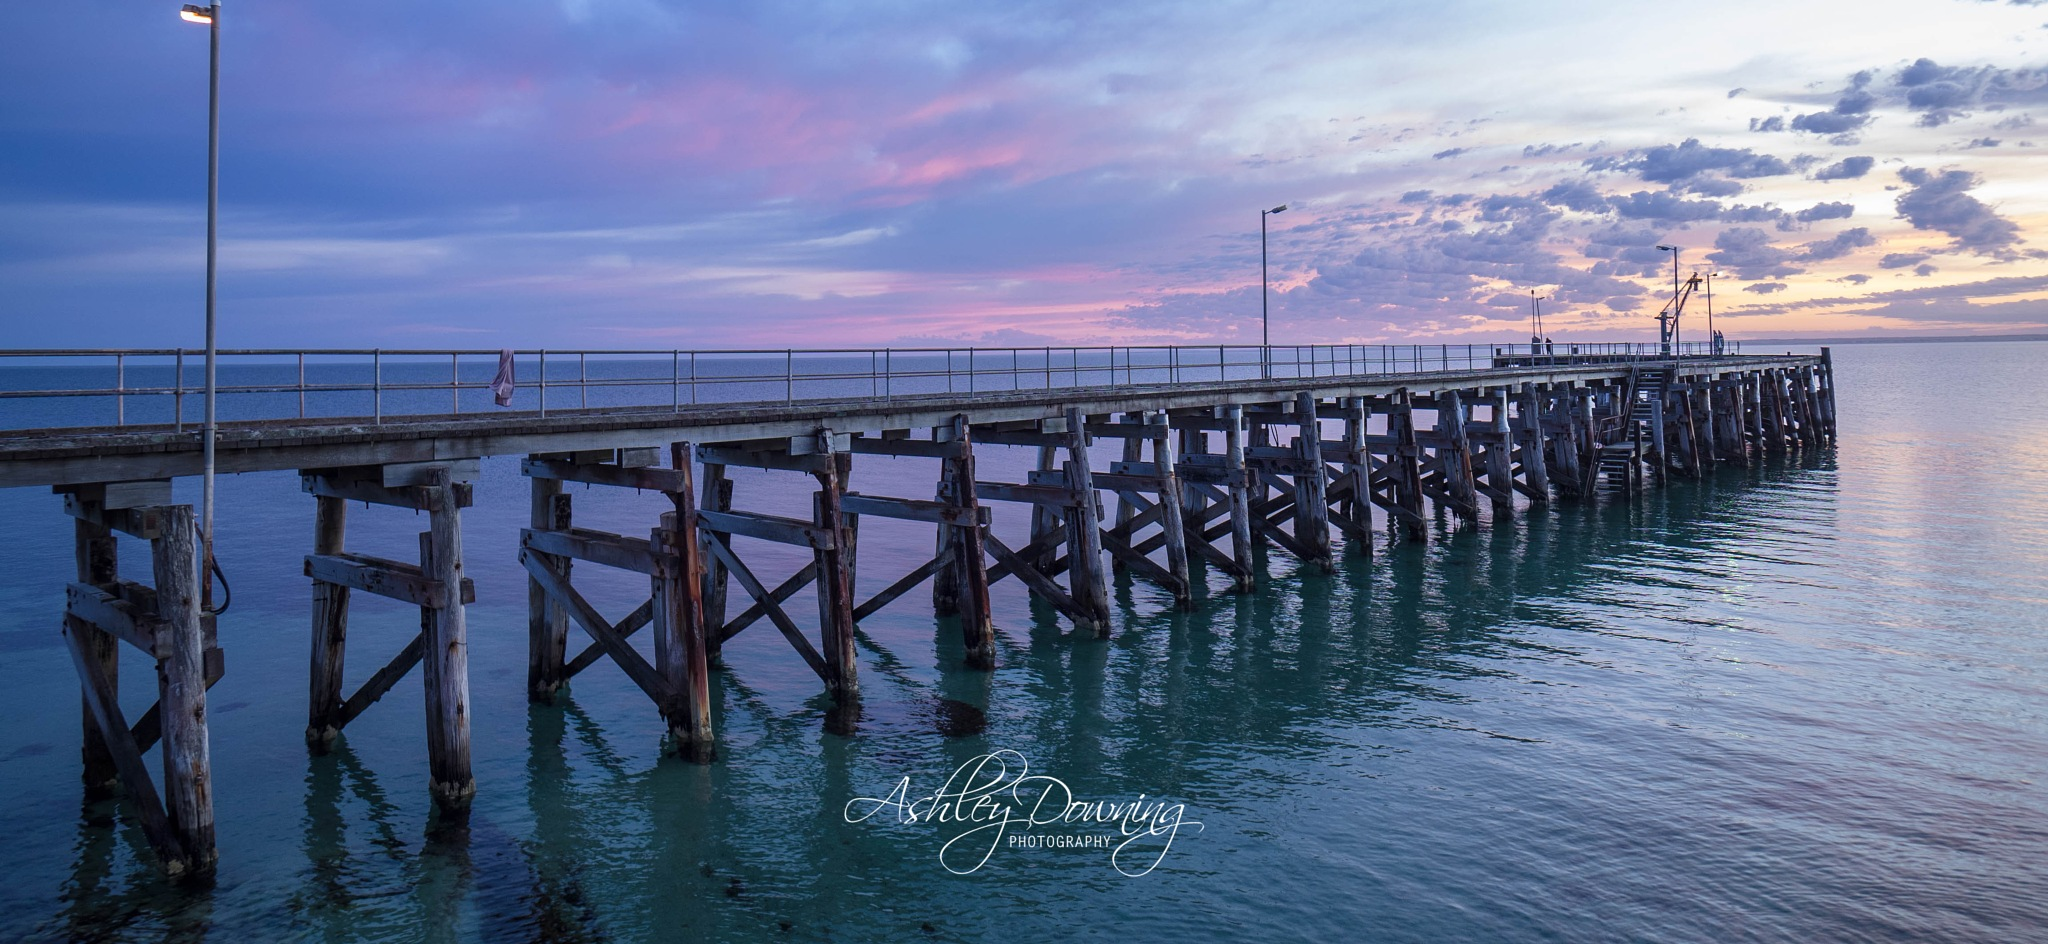 Silent Beauty by Ashley Downing